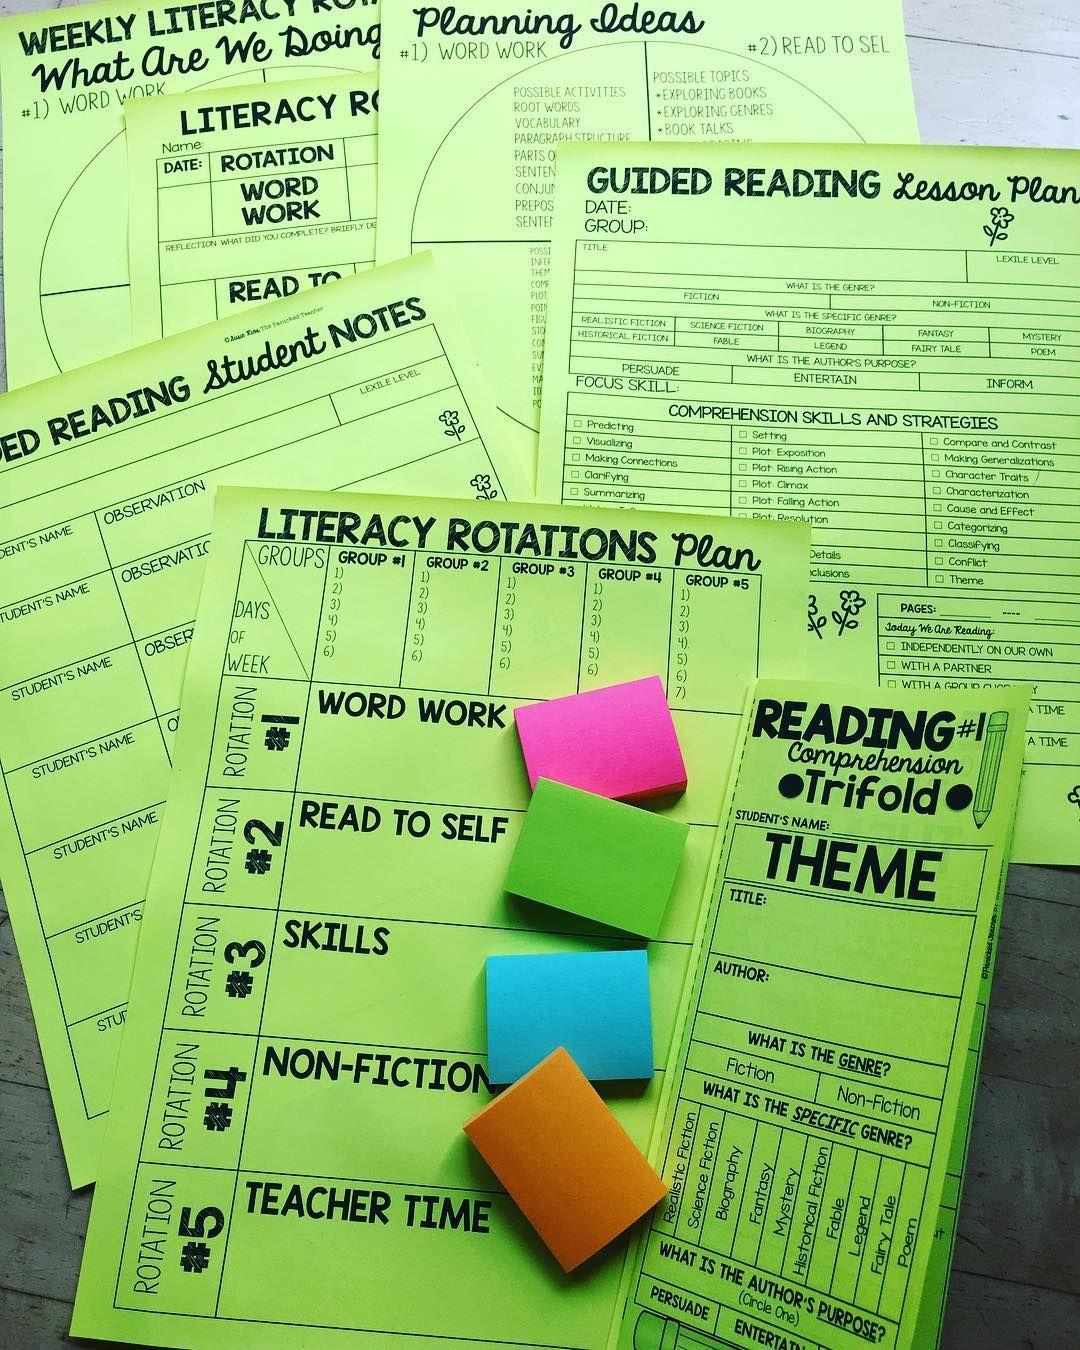 Everything you need to start LITERACY ROTATIONS in the UPPER GRADES! Included is Guided Reading Lesson Plan and templates to use during each rotation!